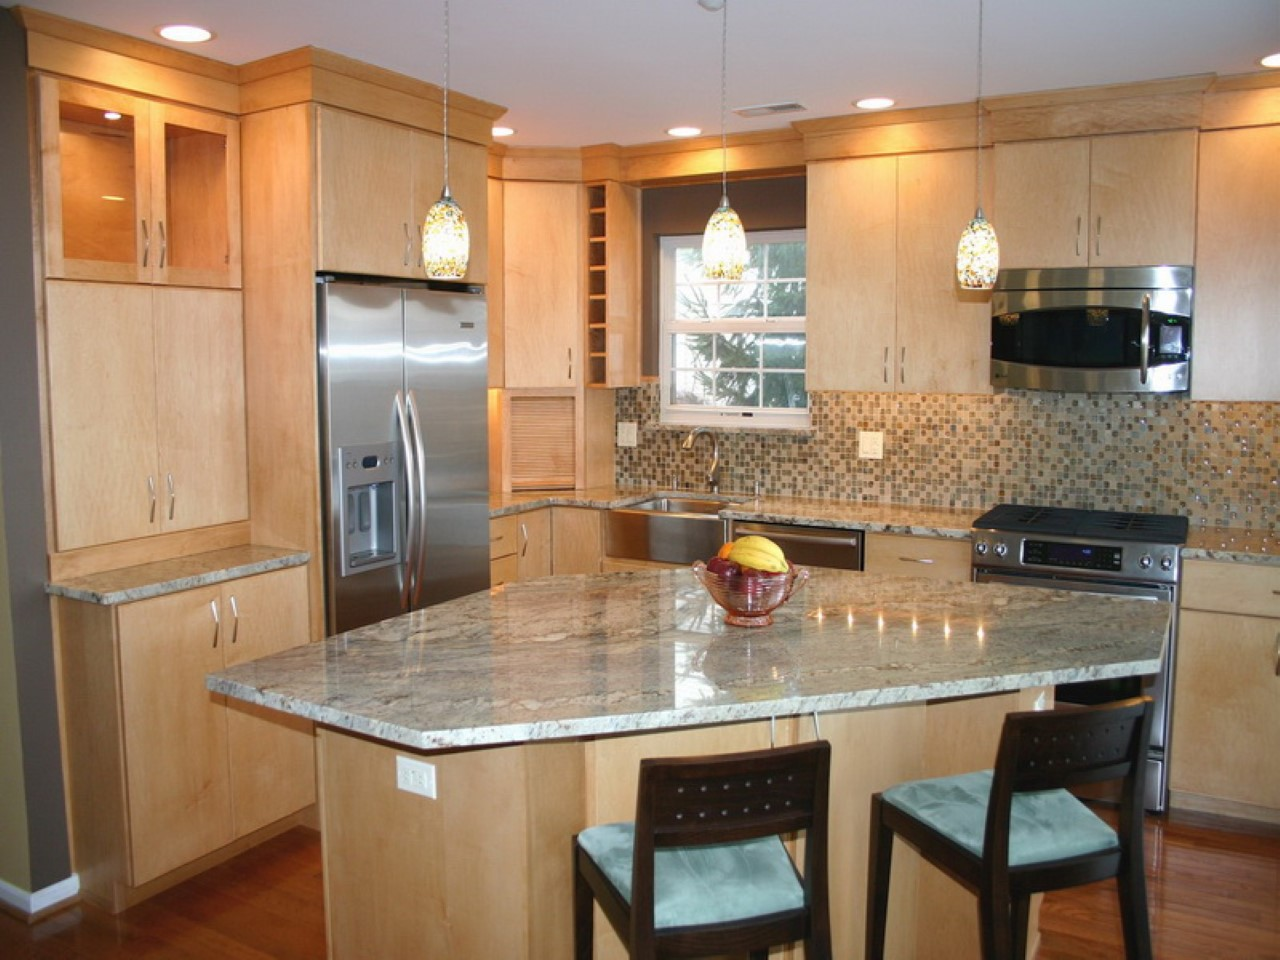 Design Ideas For Small Kitchen Islands ~ Best small kitchen design with island for perfect